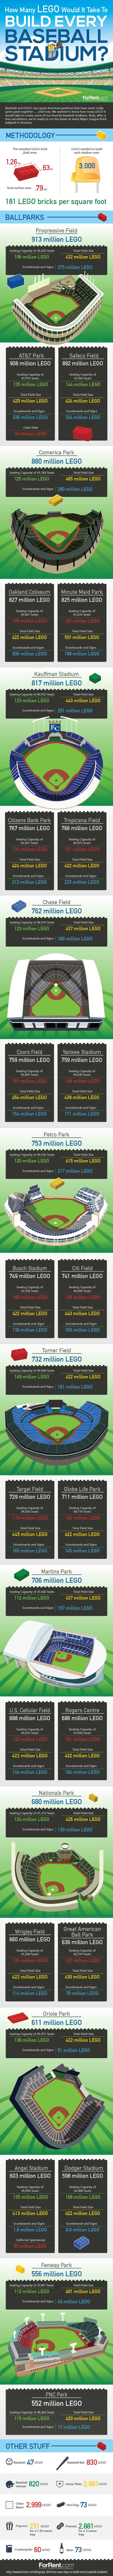 How Many LEGO Would It Take to Build Every Baseball Stadium?